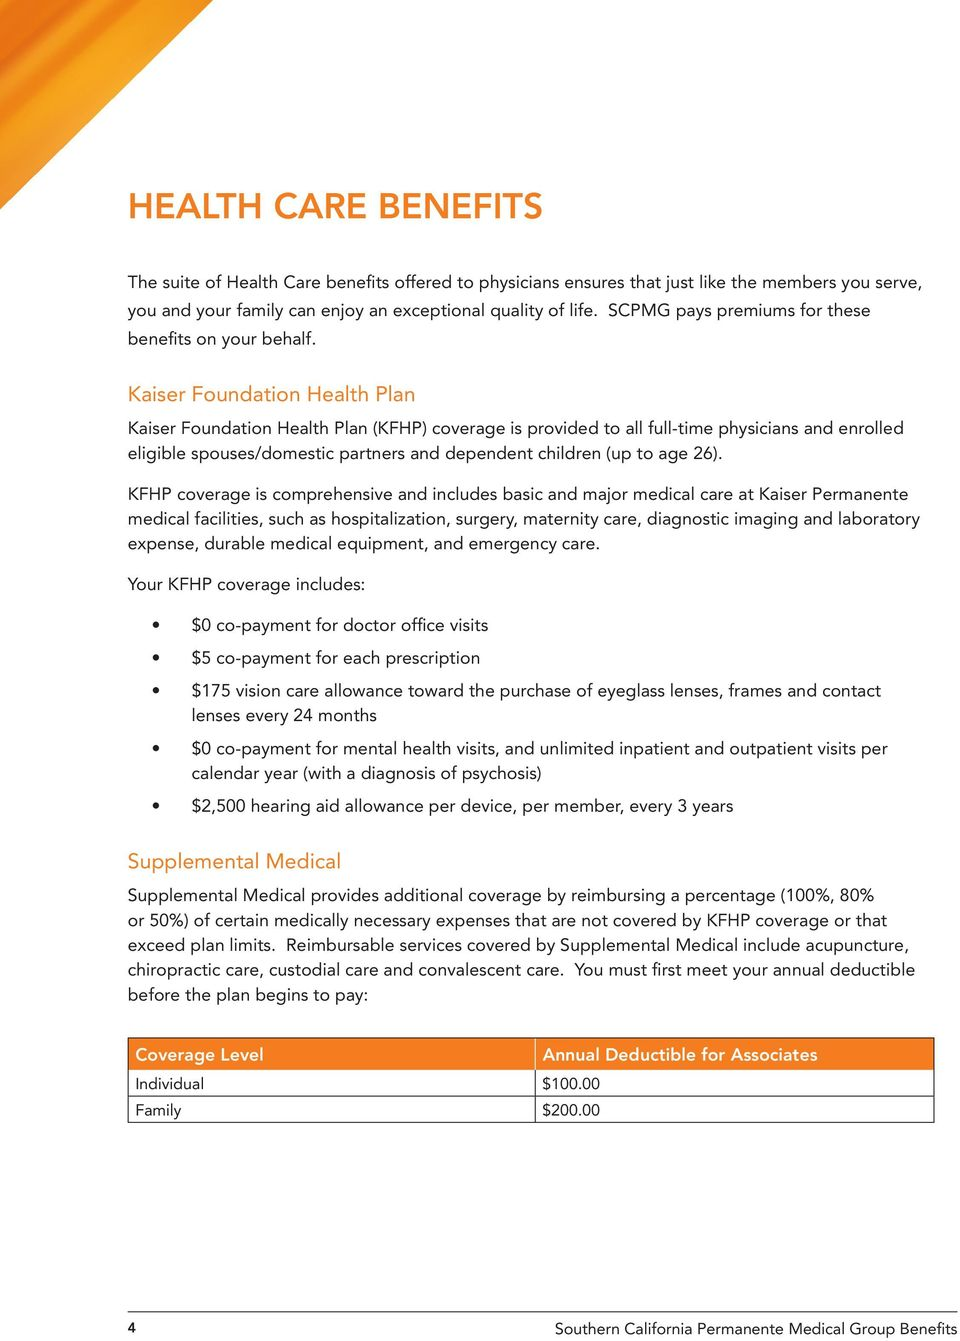 Kaiser Foundation Health Plan Kaiser Foundation Health Plan (KFHP) coverage is provided to all full-time physicians and enrolled eligible spouses/domestic partners and dependent children (up to age